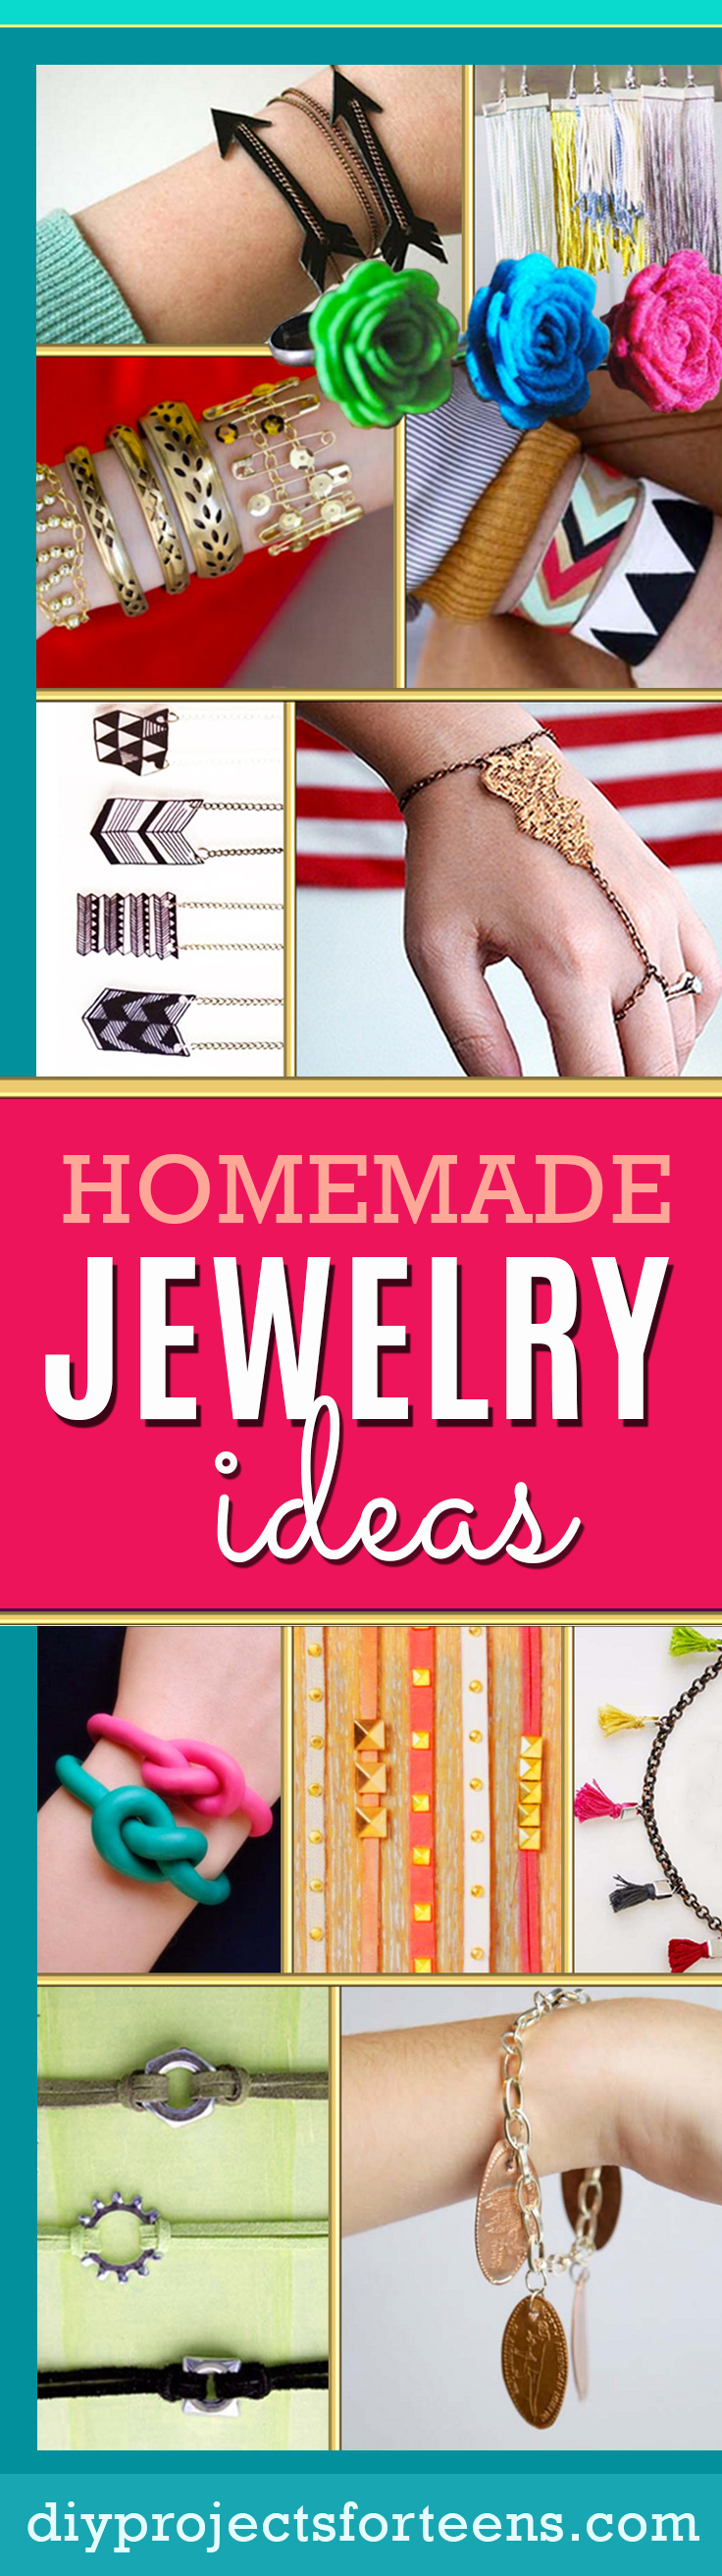 Fun DIY Jewelry Ideas | Cool Homemade Jewelry Tutorials for Adults and Teens | Awesome Bracelets, Necklaces, Earrings and Accessories You Can Make At Home http://diyprojectsforteens.com/fun-diy-jewelry-ideas-for-teens